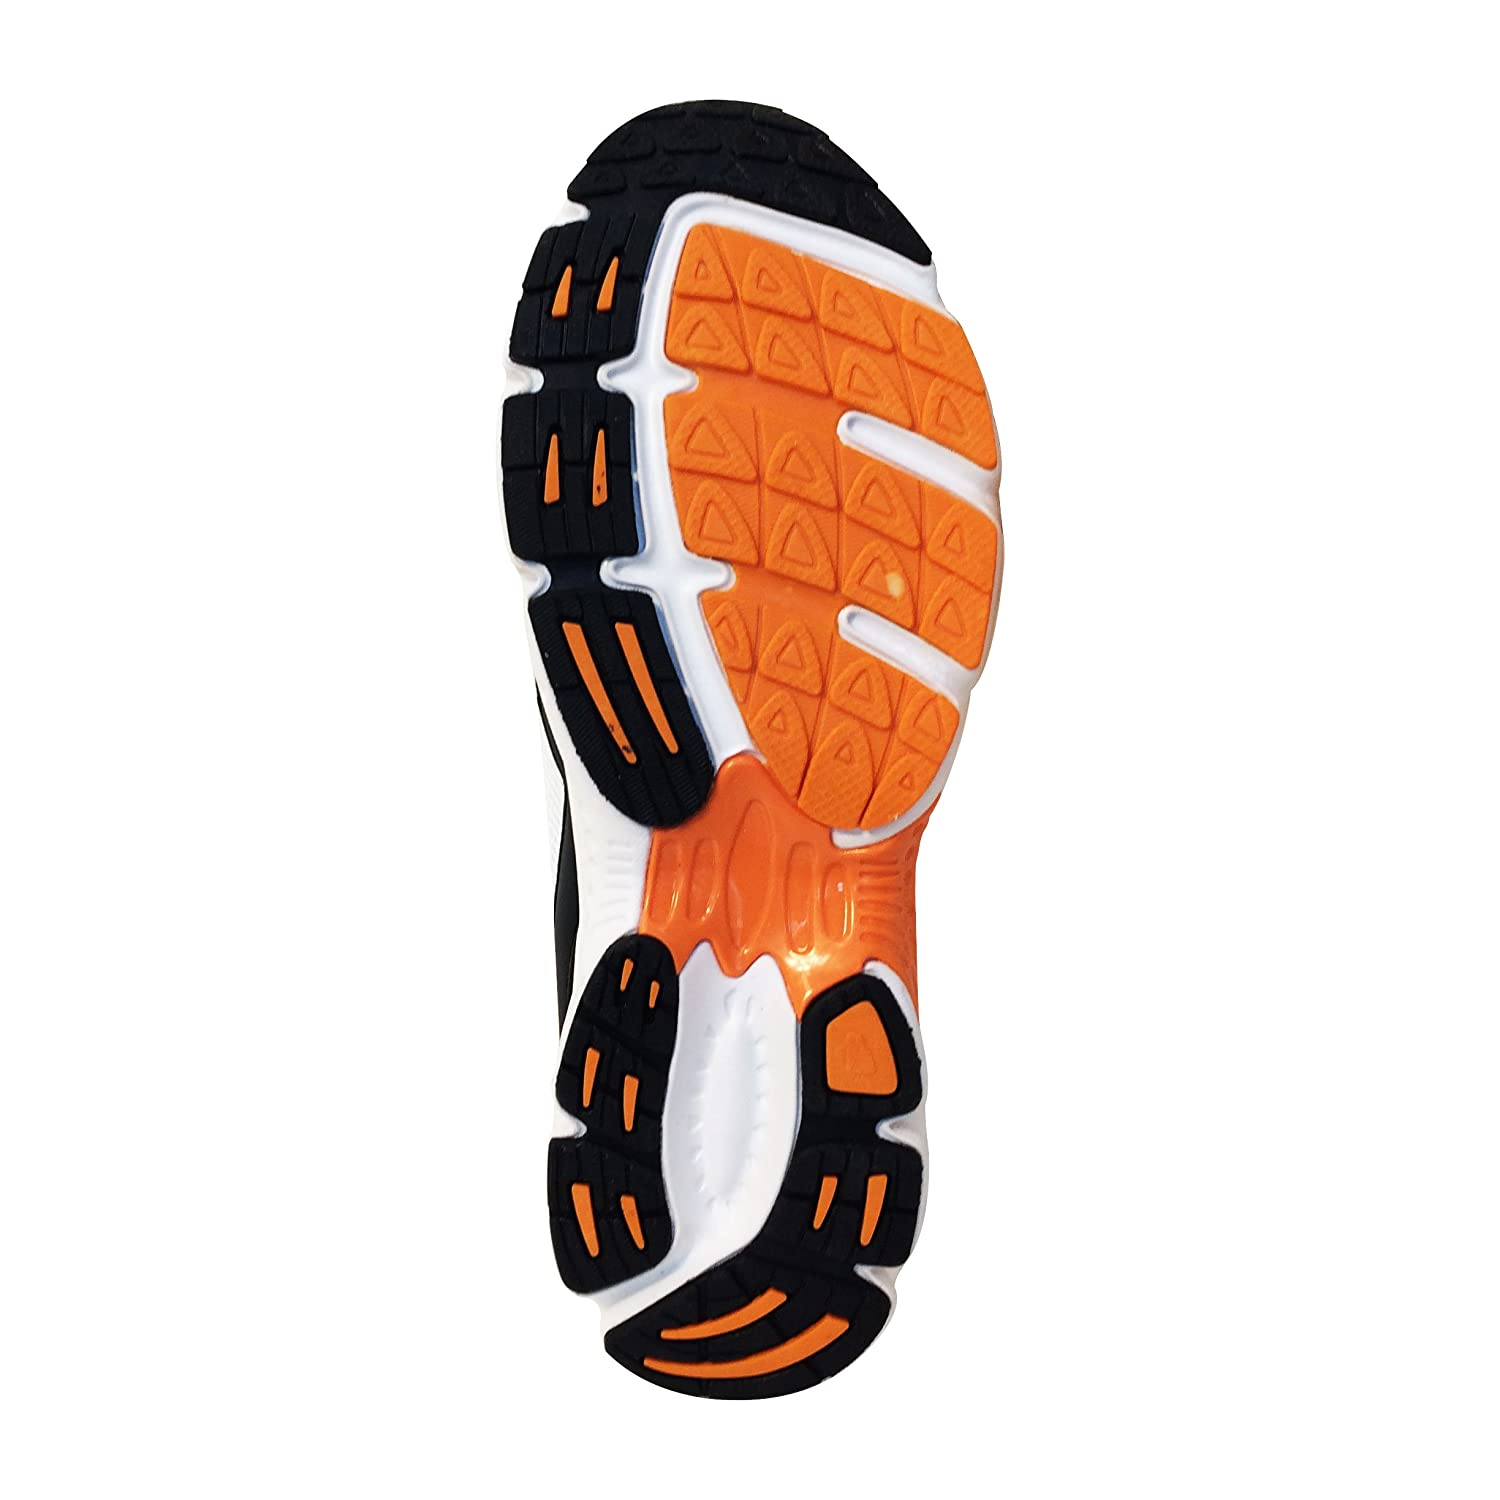 Squash Racqetball Shoes for Sports Played On Wooden Floor US 11 - UK 10 - Euro 45, Orange - Black - White